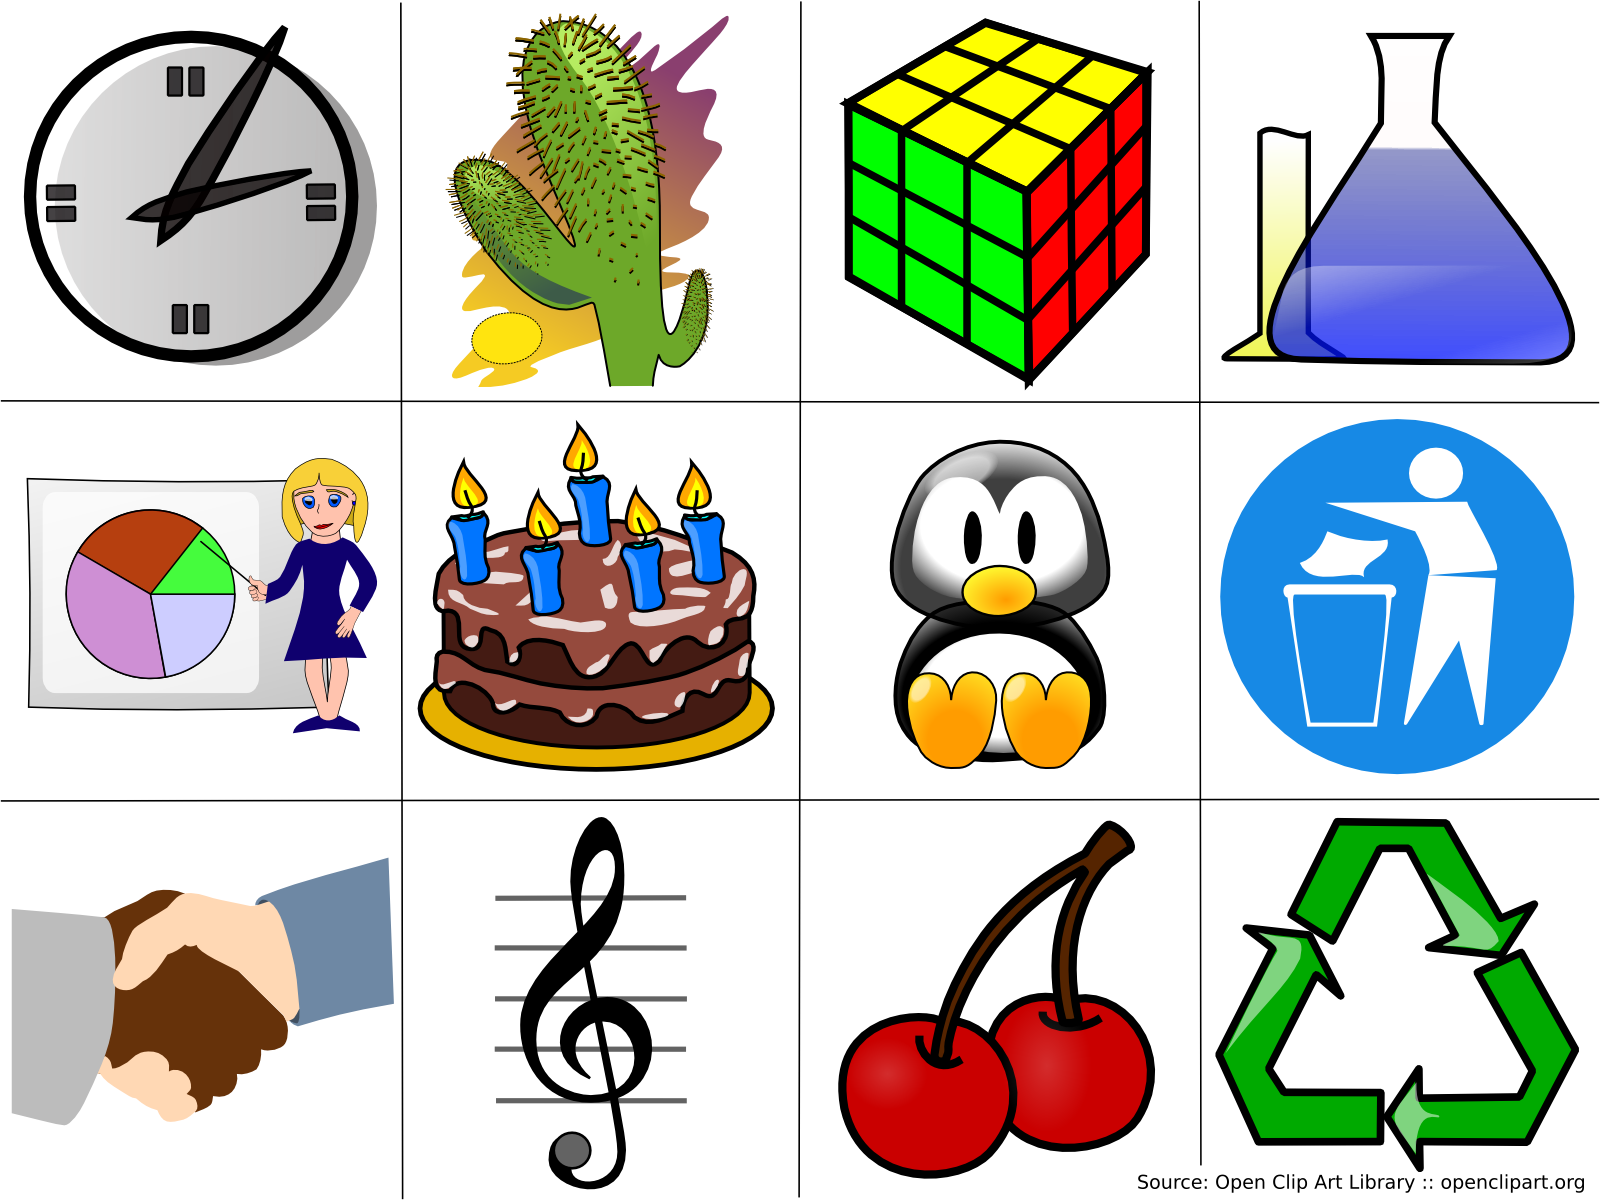 Wmf Clipart Free Clipartfest - Wmf Library, Transparent background PNG HD thumbnail